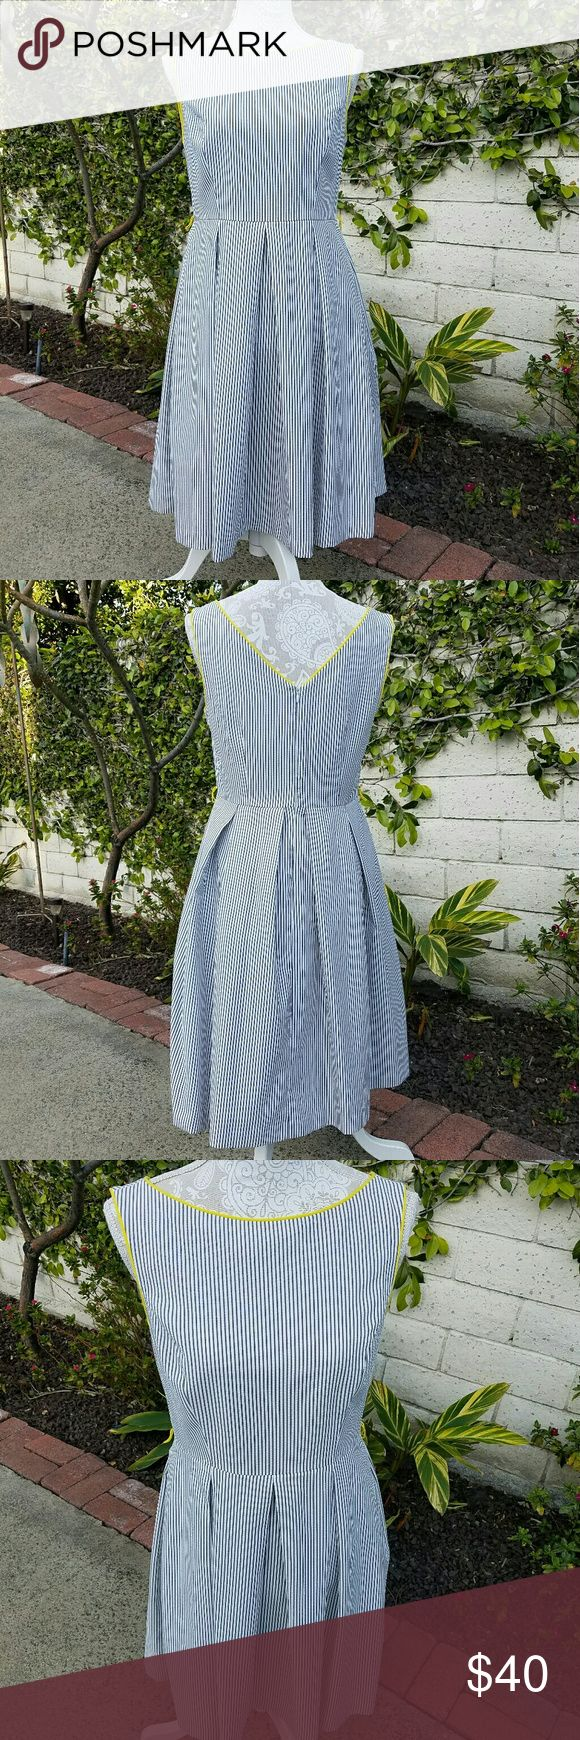 Nieman Marcus Siena Studio Dress Siena Studios from Niman Marcus  Pin Stripe Dress blue/grey on white with yellow trim accent  Zip up back enclosure  Worn once no flaws siena studios  Dresses